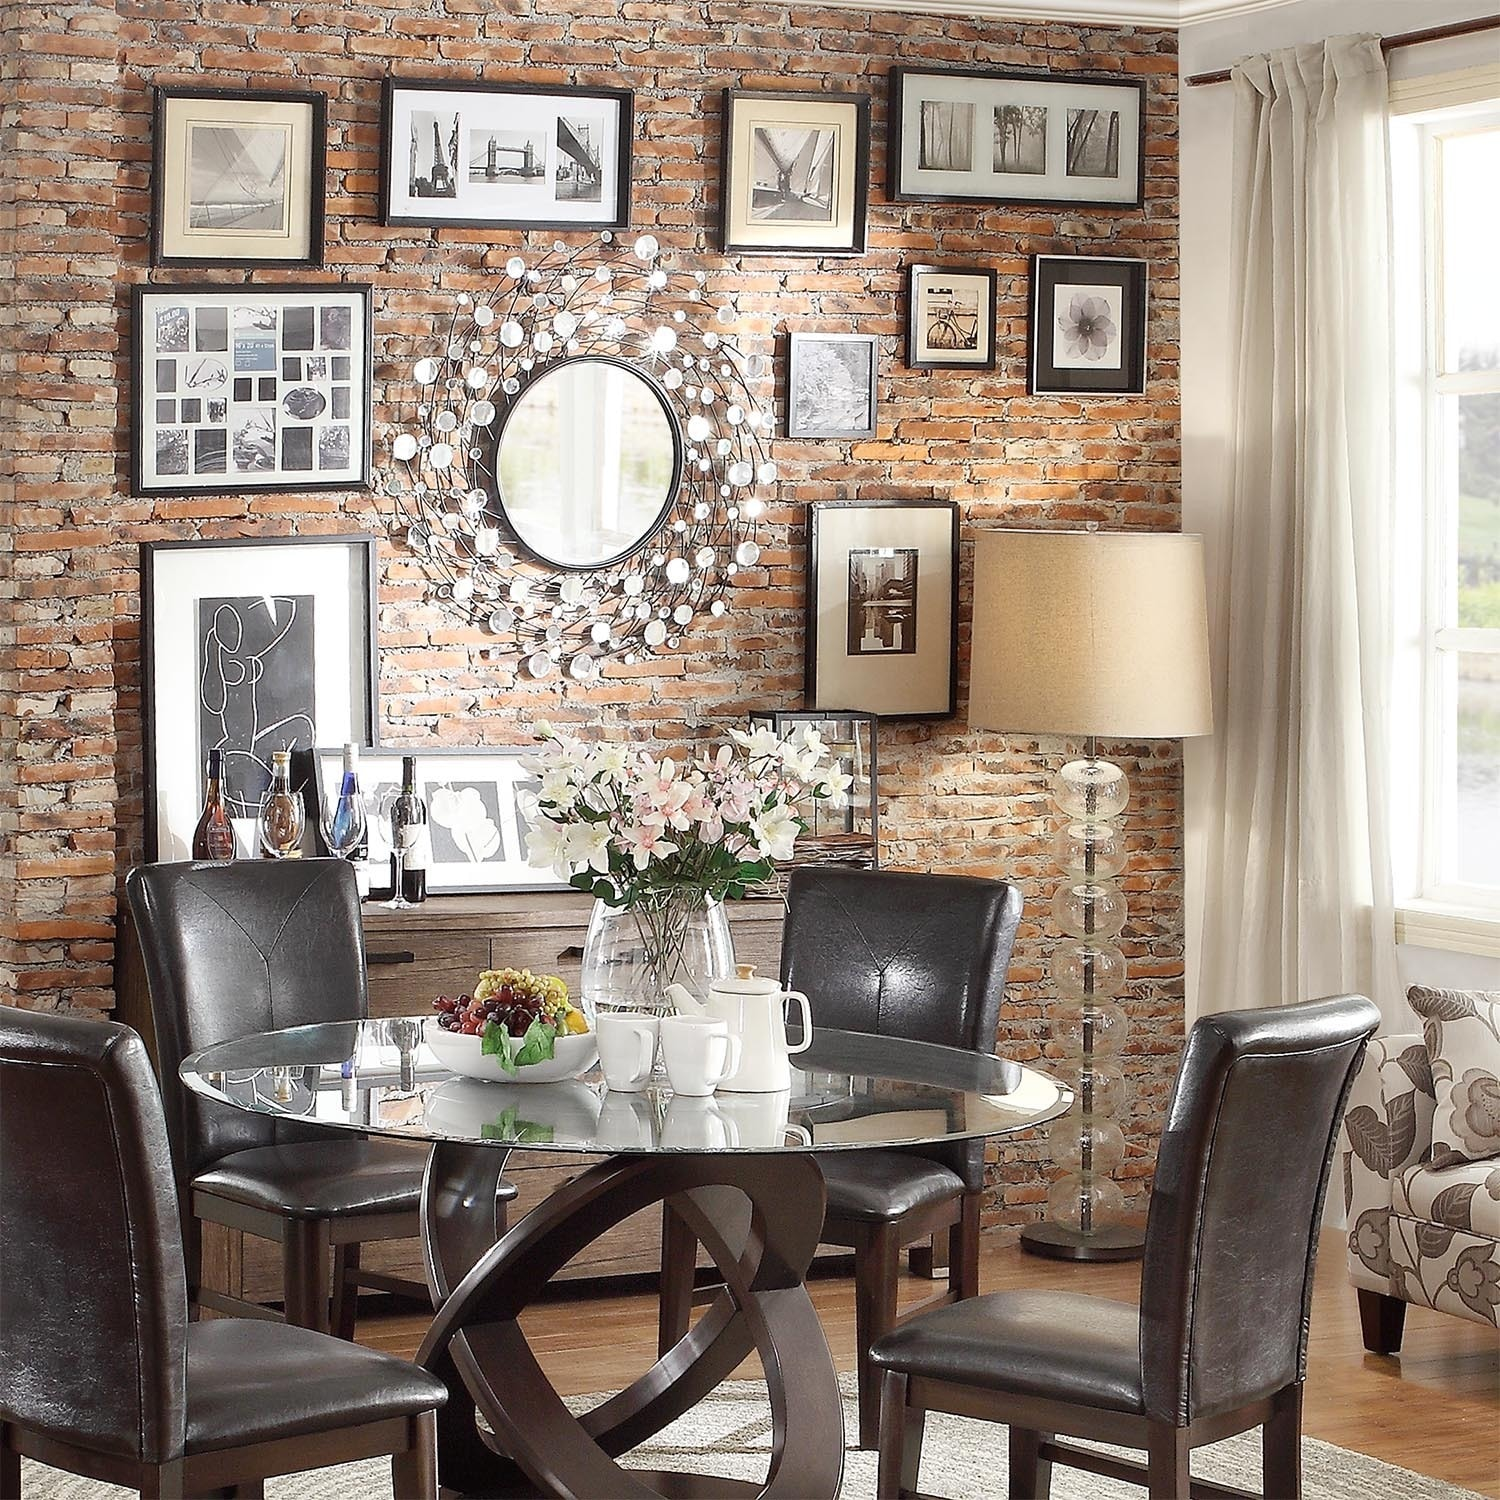 Pollock Spinning Nest Silver Finish Accent Wall Mirror - Free Shipping  Today - Overstock.com - 15684129